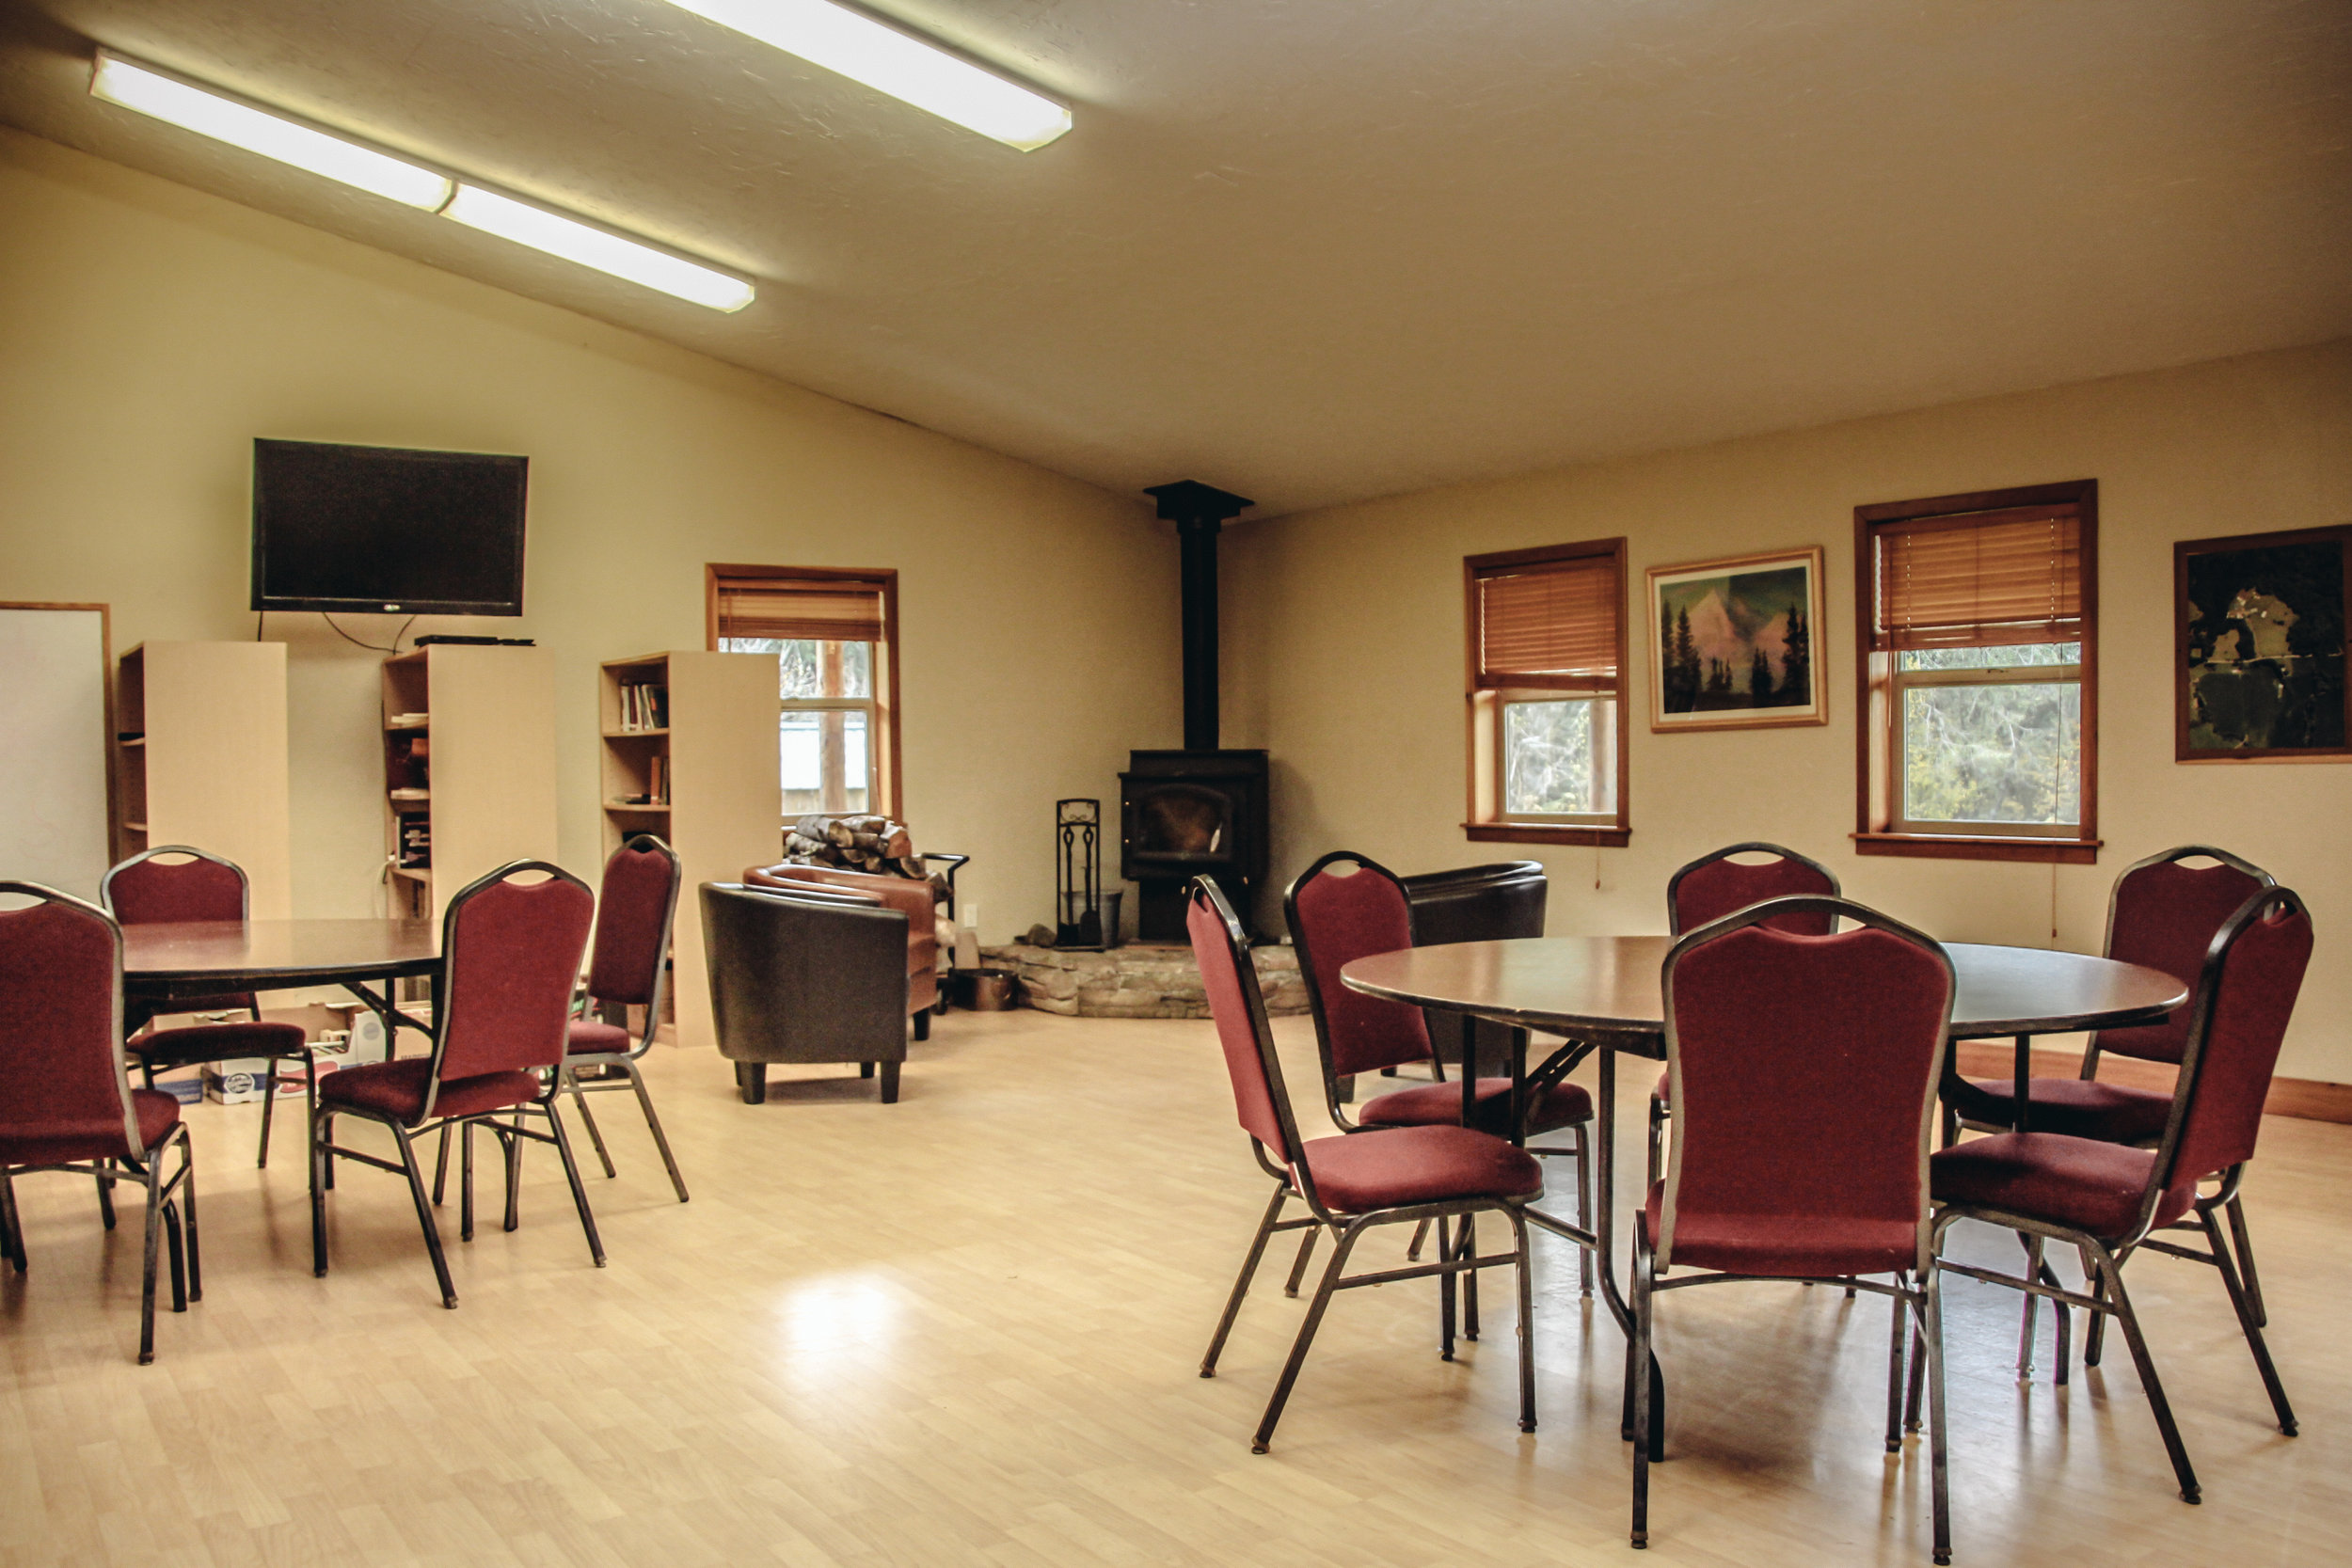 Our Small Meeting Room, seats 40 people + a Fire Place